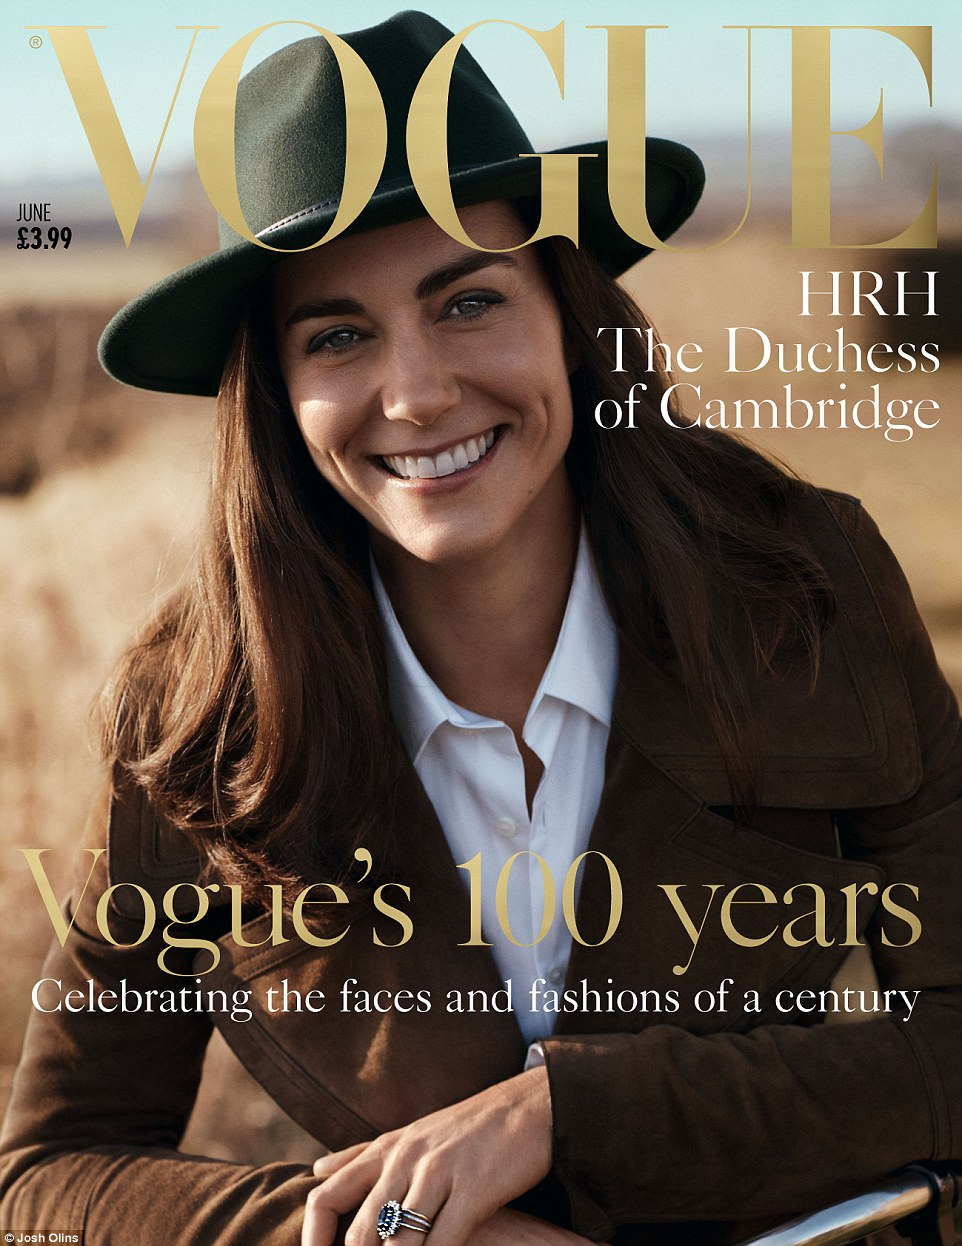 British Vogue's June issue